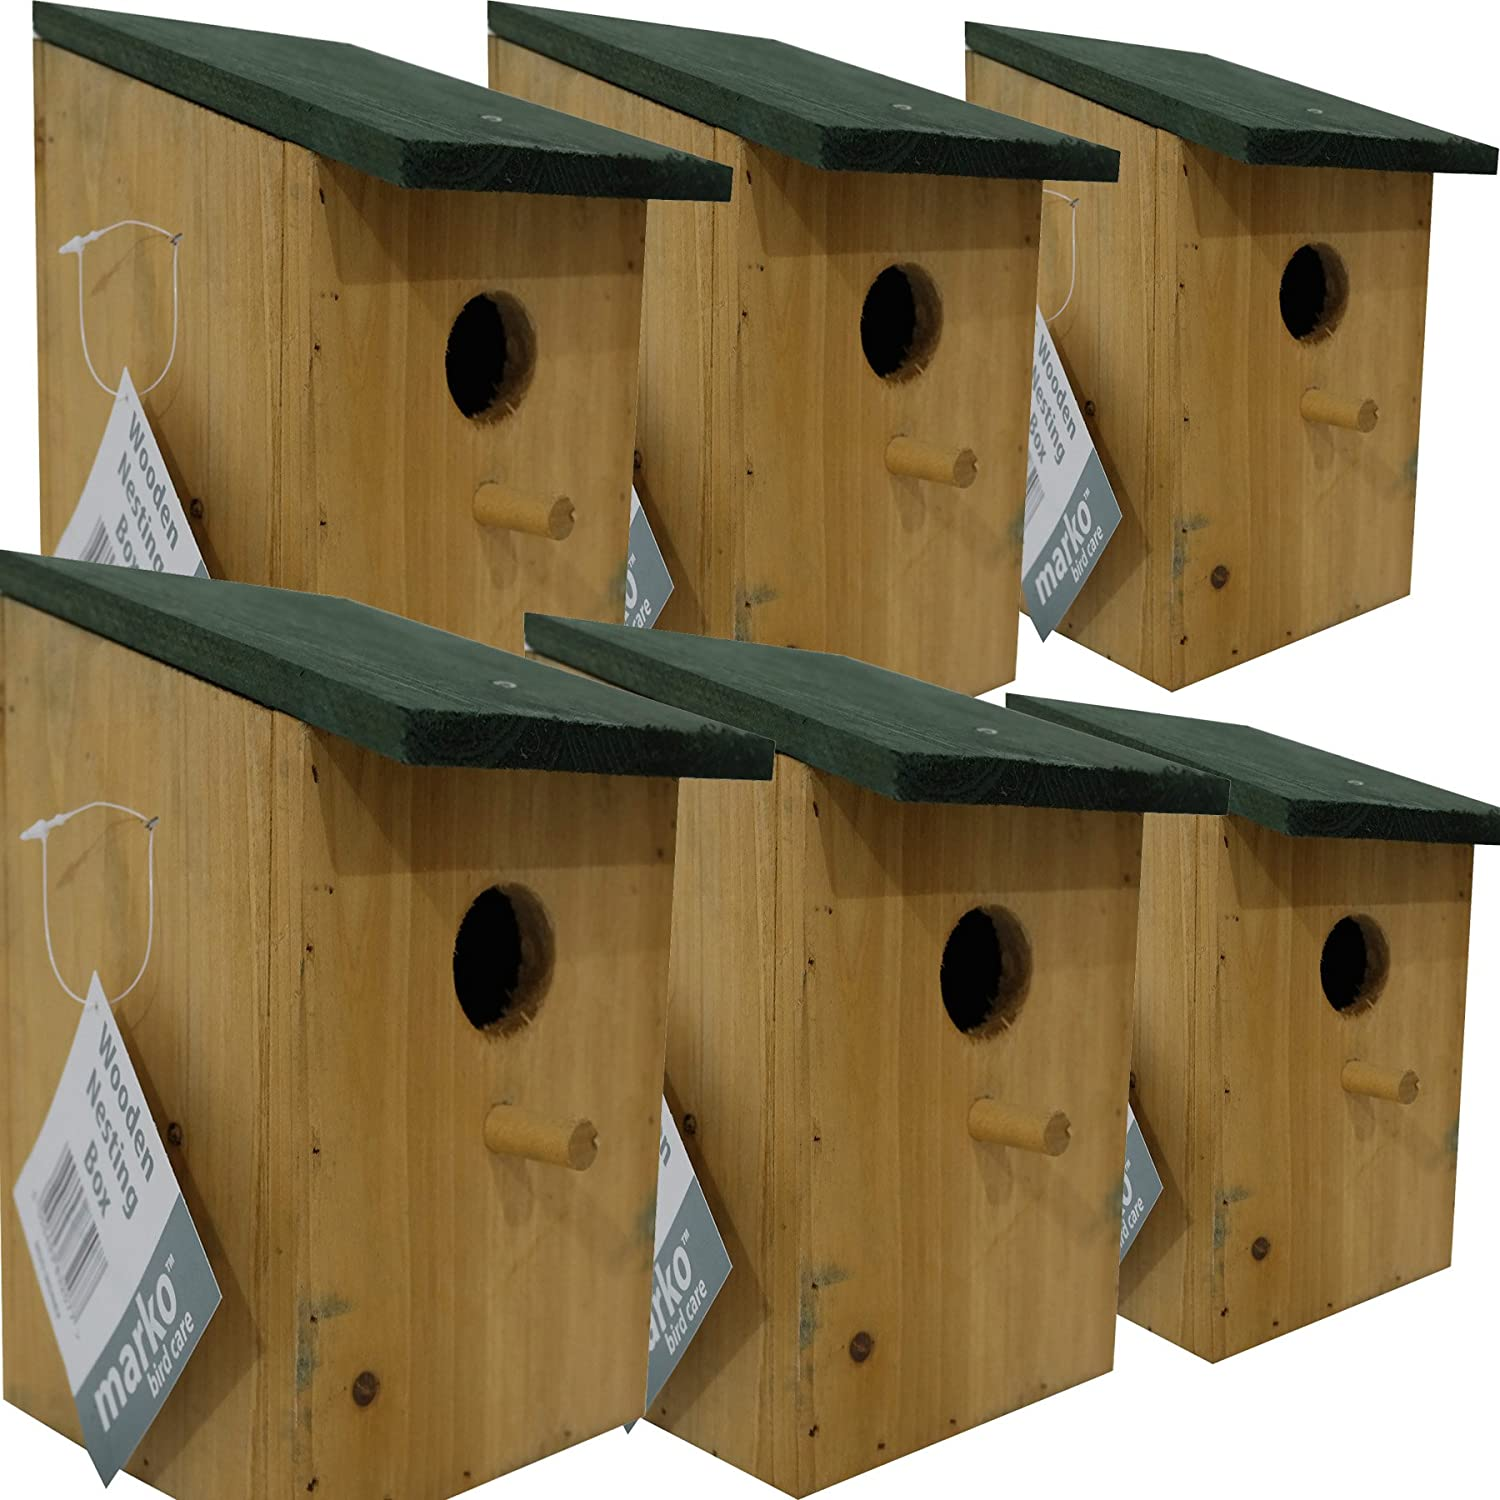 6 pc Traditional Wooden Nesting Boxes Bird Nest Wood House Small Birds Bluetit Marko Bird Care